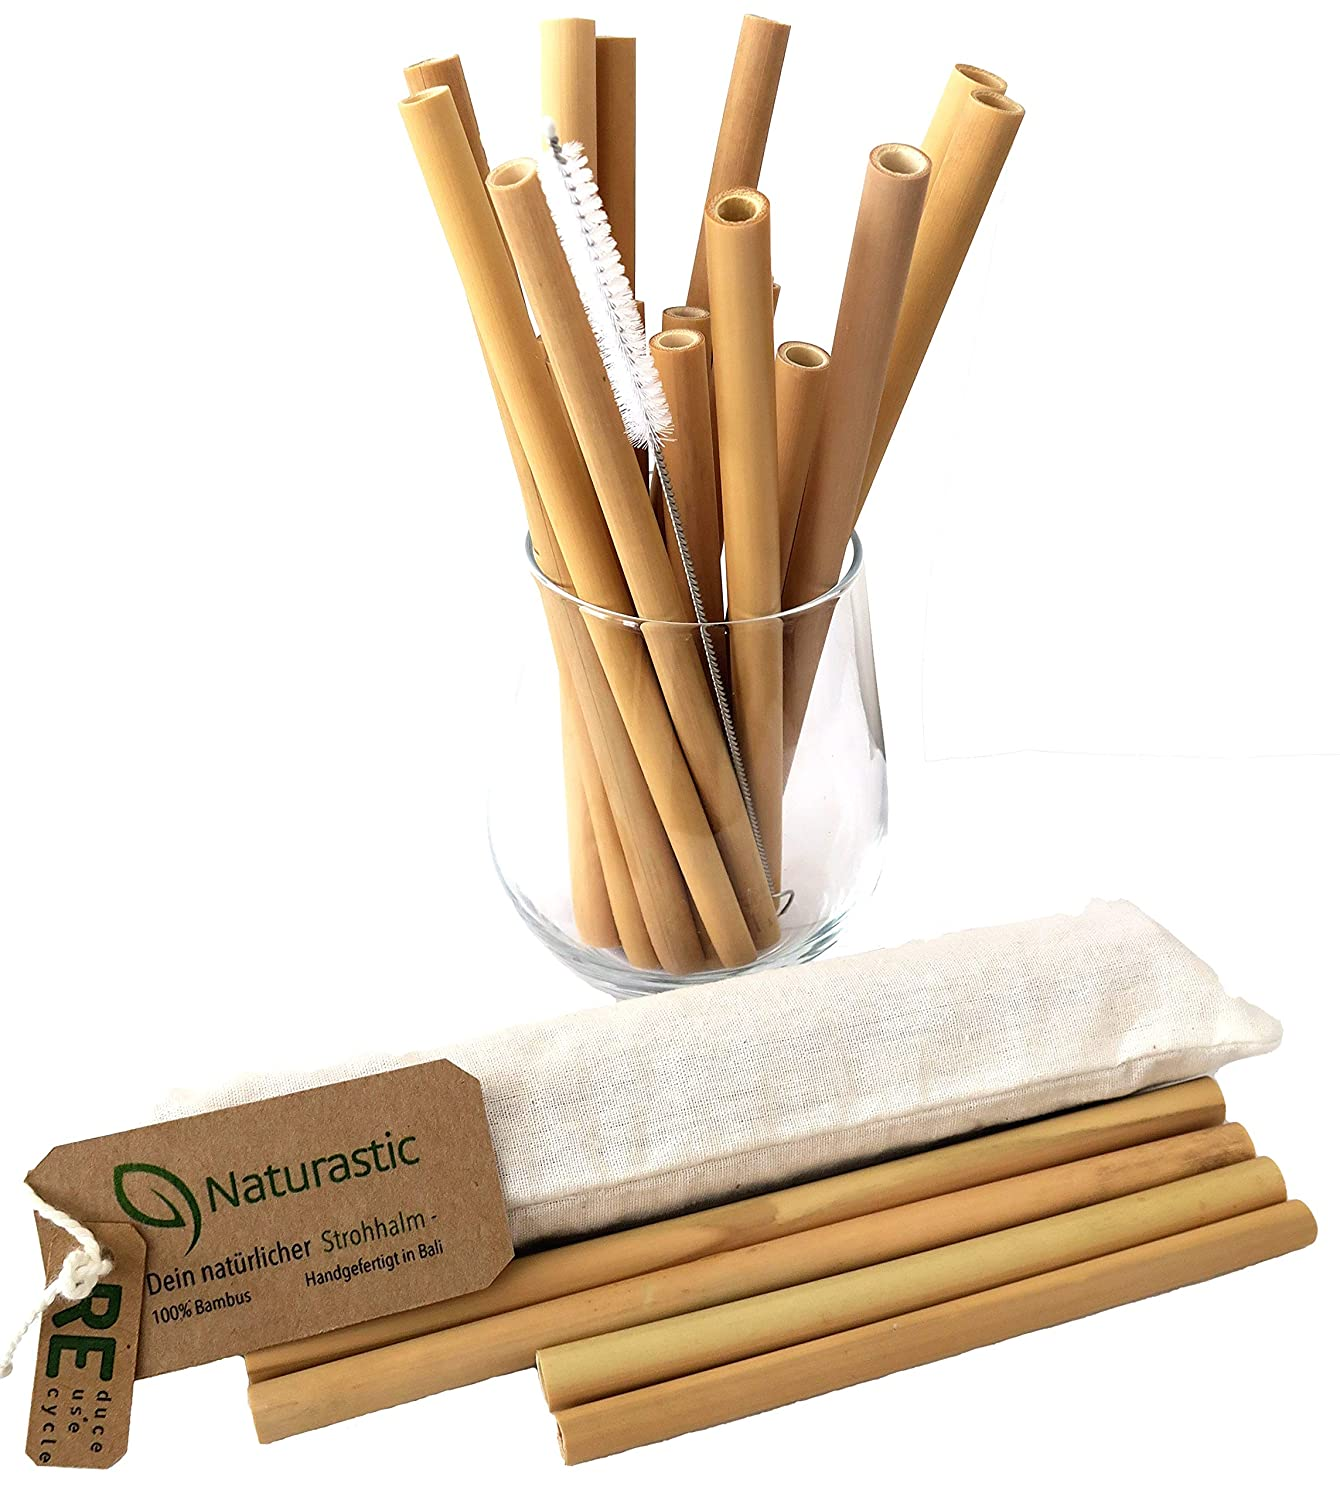 Natural Astic 100 Bamboo Drinking Straws With Cleaning Brush Set Of